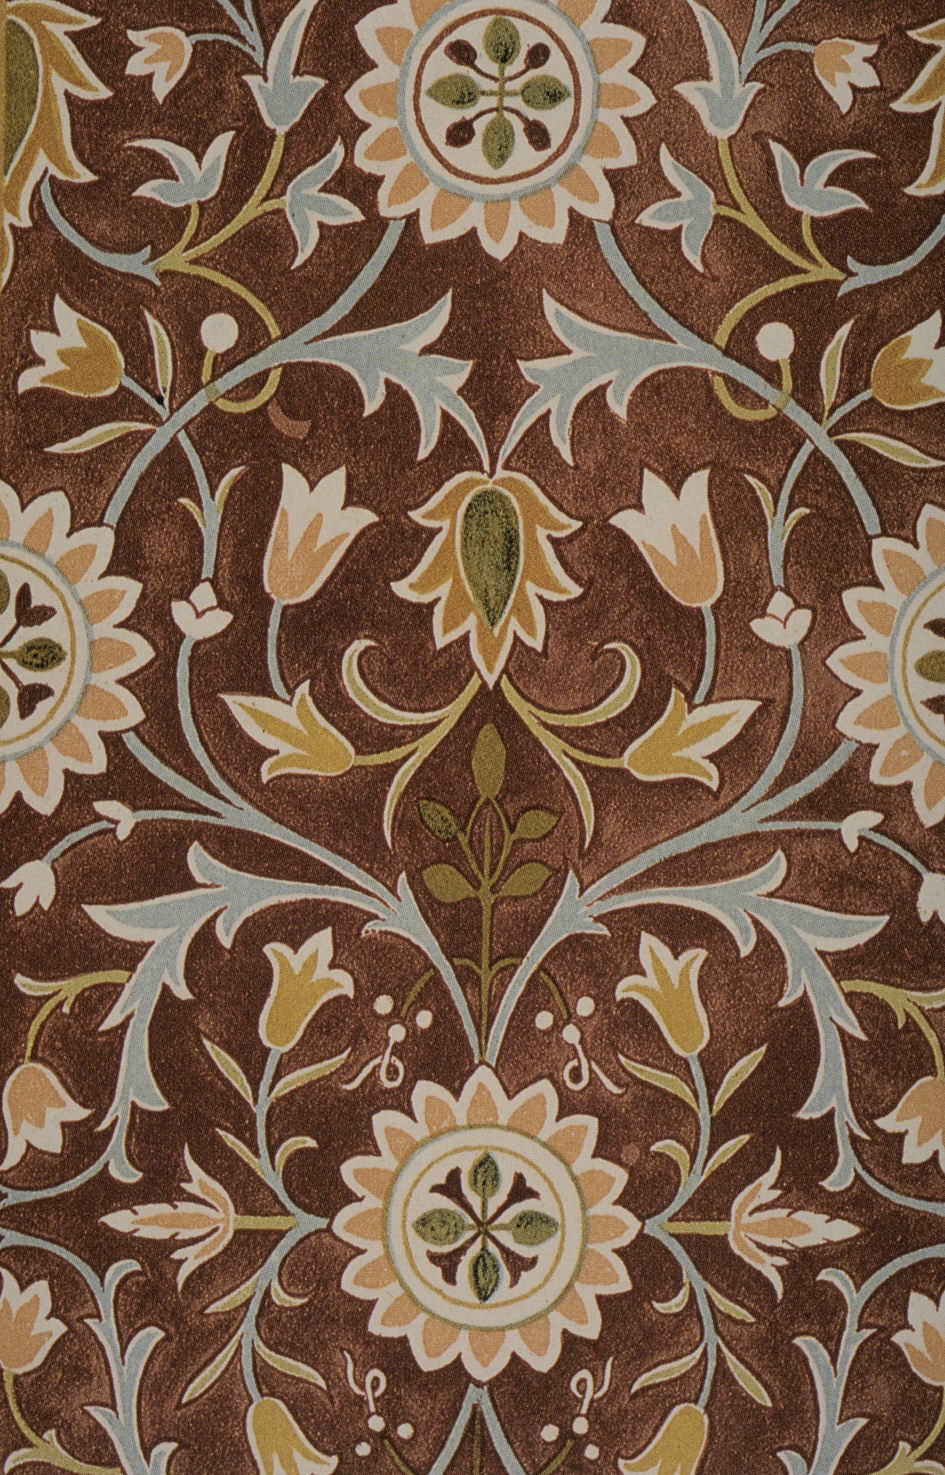 FileMorris Little Flower Carpet Design Detailjpg